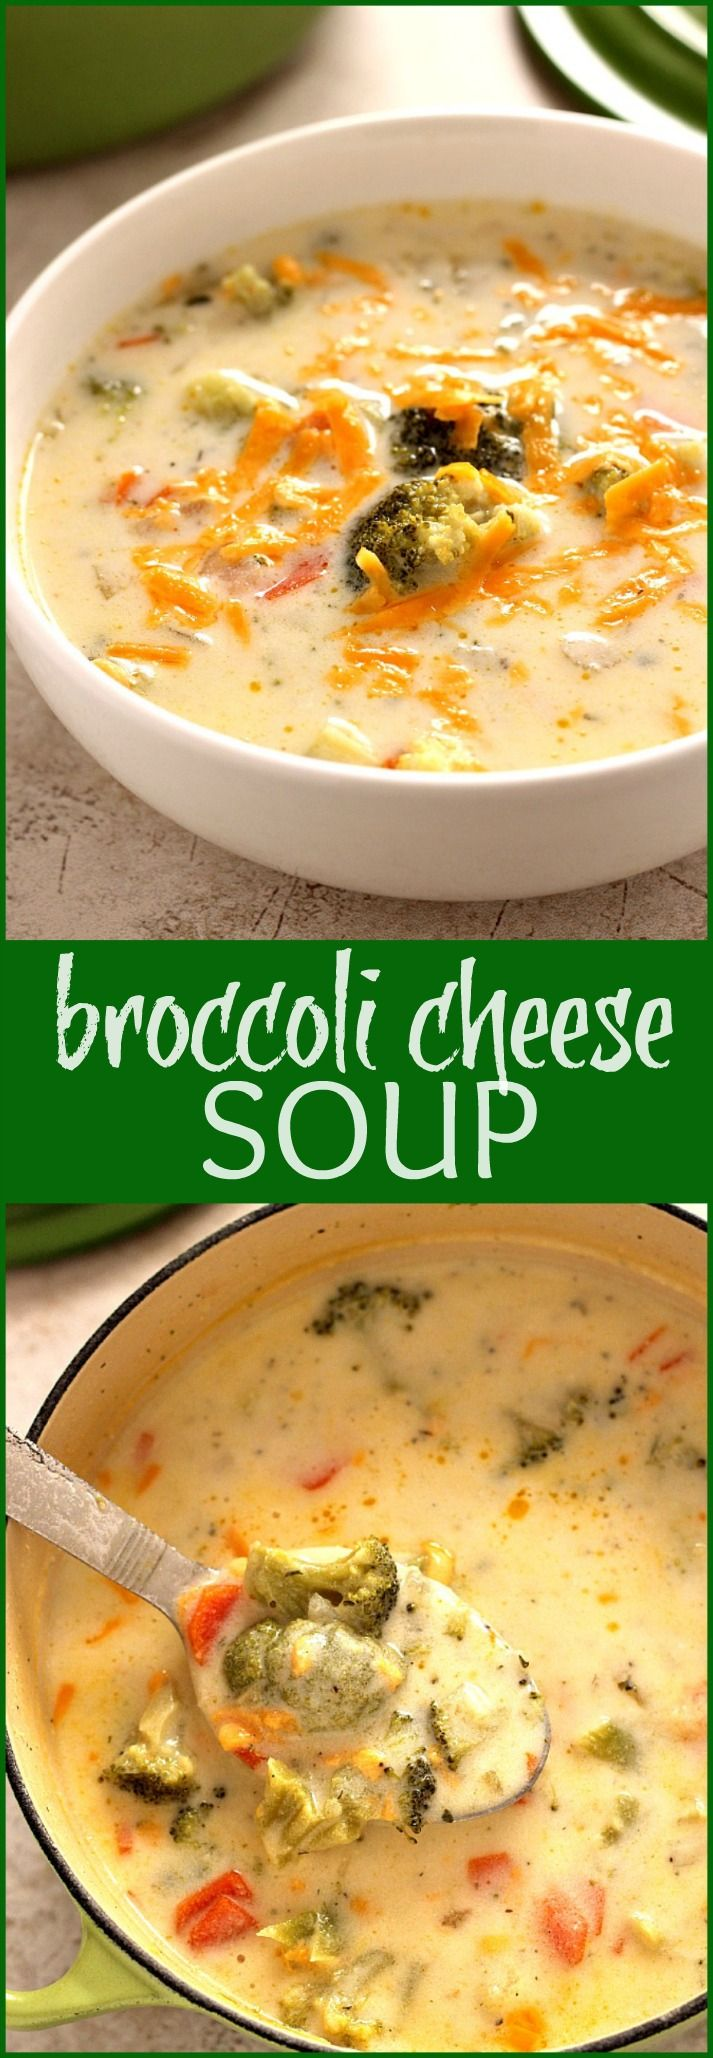 Broccoli Cheese Soup - make a Panera copycat in your own kitchen in under 30 minutes! This creamy and cheesy soup with broccoli florets will be a family favorite!